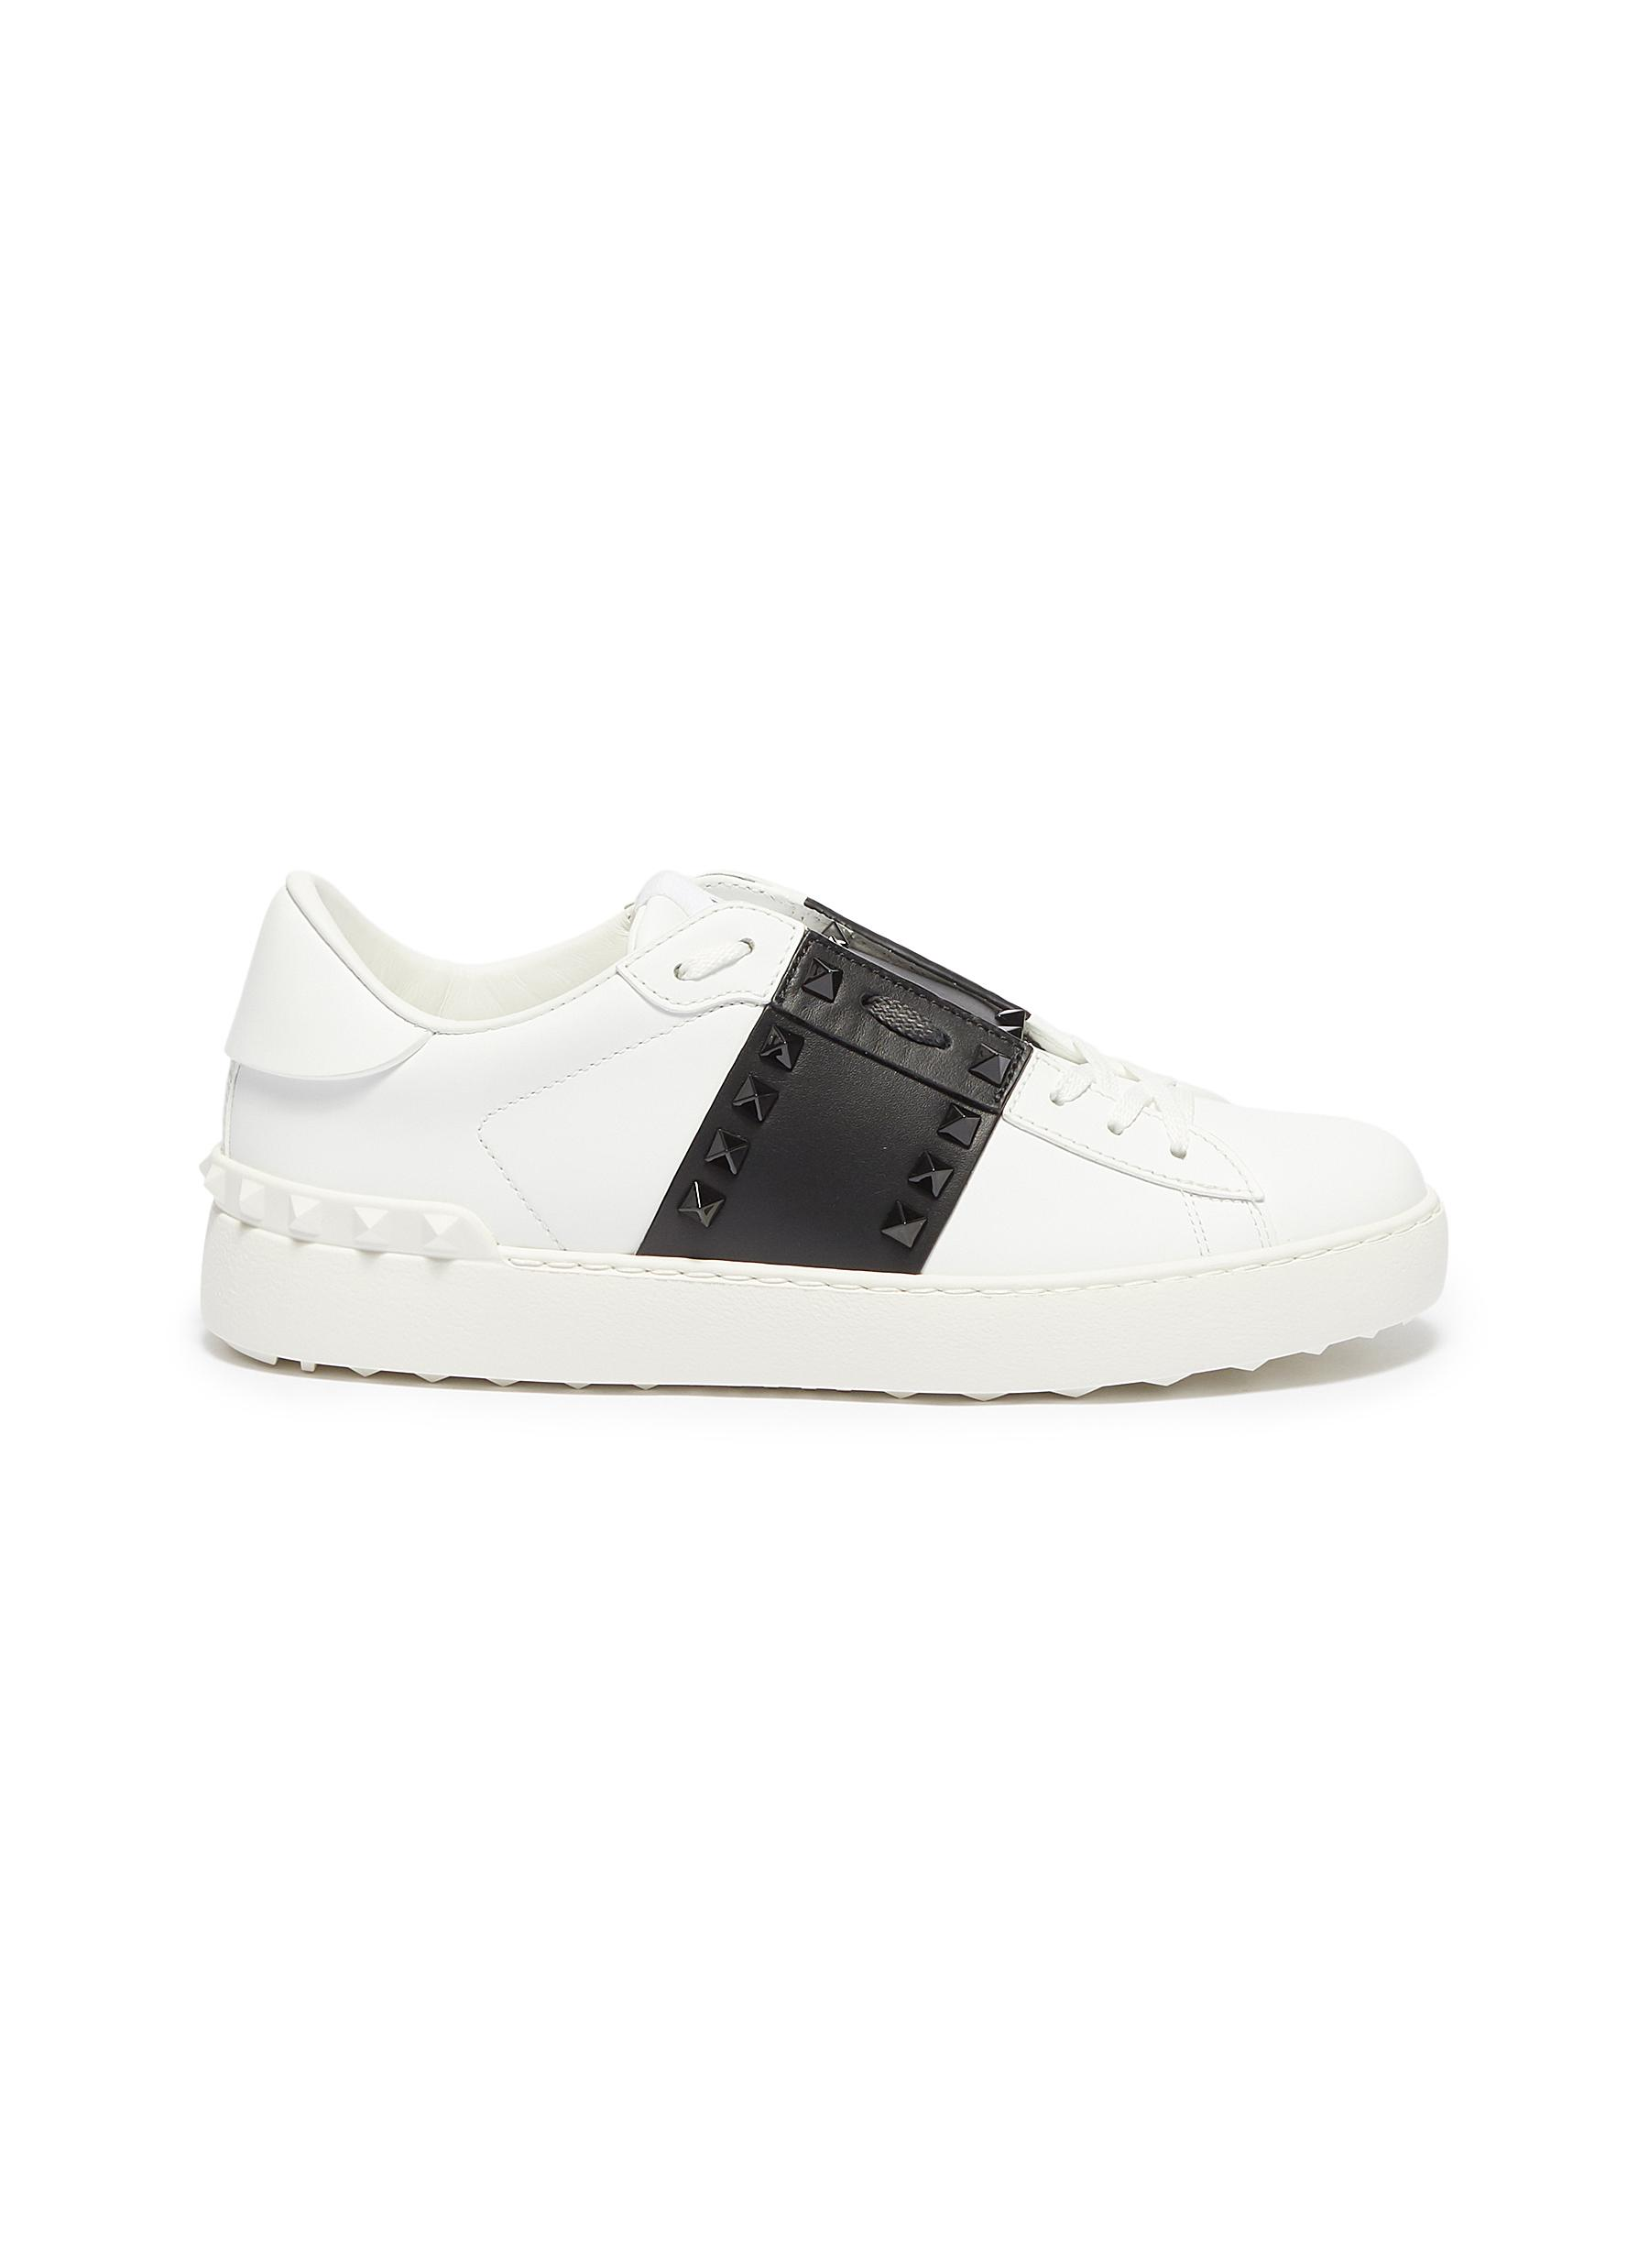 Rockstud Untitled 11 colourblock leather sneakers by Valentino